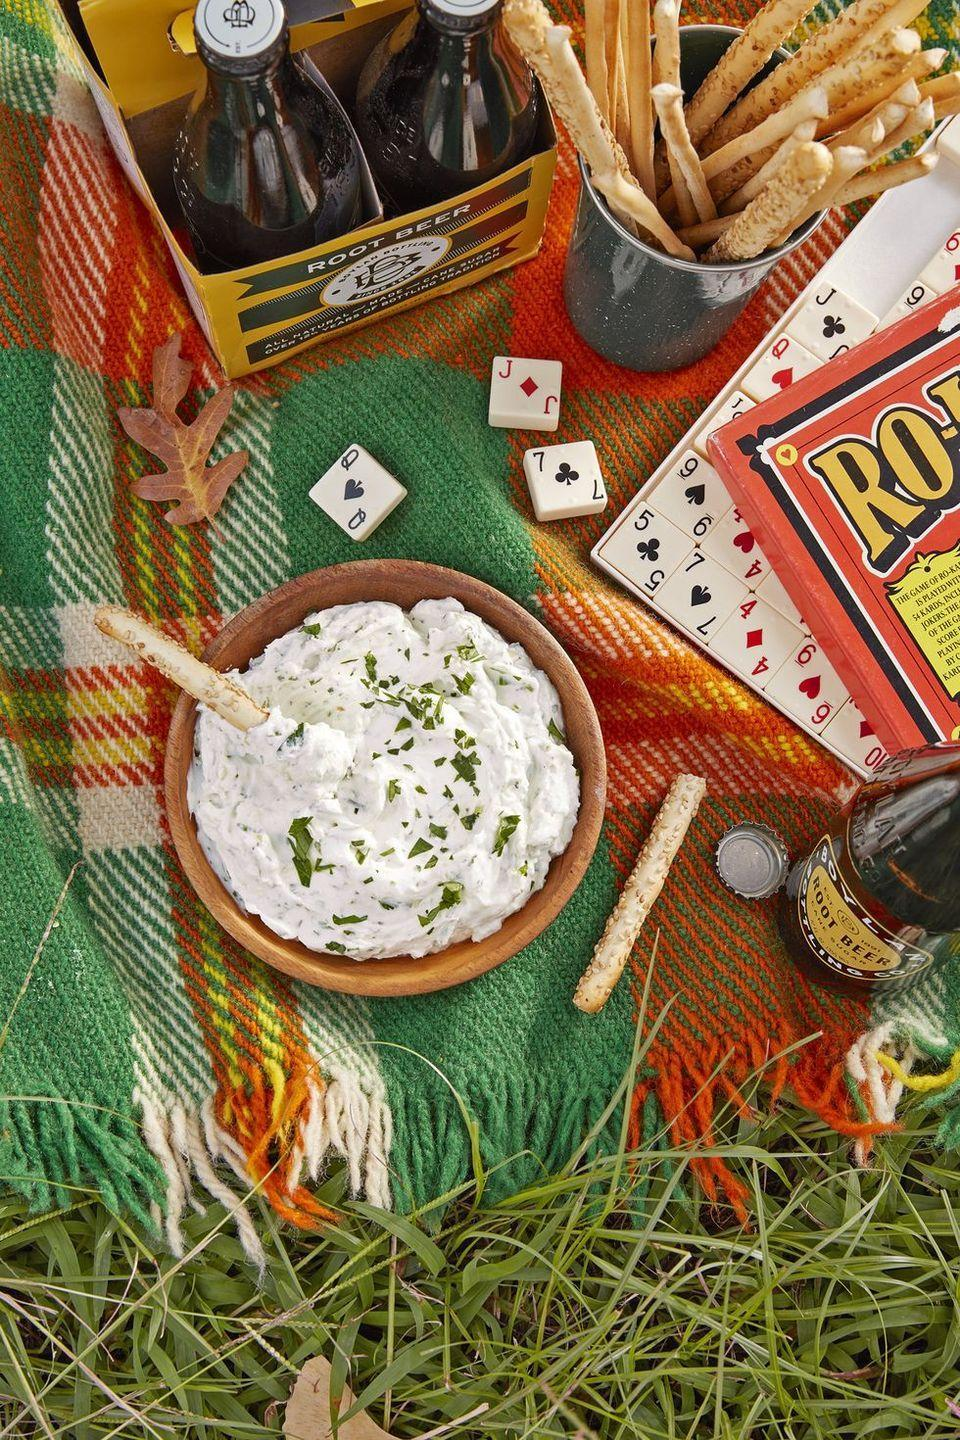 "<p>Goat cheese brings a little creamy funk to the (snack) table.</p><p><em><a href=""https://www.countryliving.com/food-drinks/a24407621/herbed-goat-cheese-dip-recipe/"" rel=""nofollow noopener"" target=""_blank"" data-ylk=""slk:Get the recipe from Country Living »"" class=""link rapid-noclick-resp"">Get the recipe from Country Living »</a></em></p>"